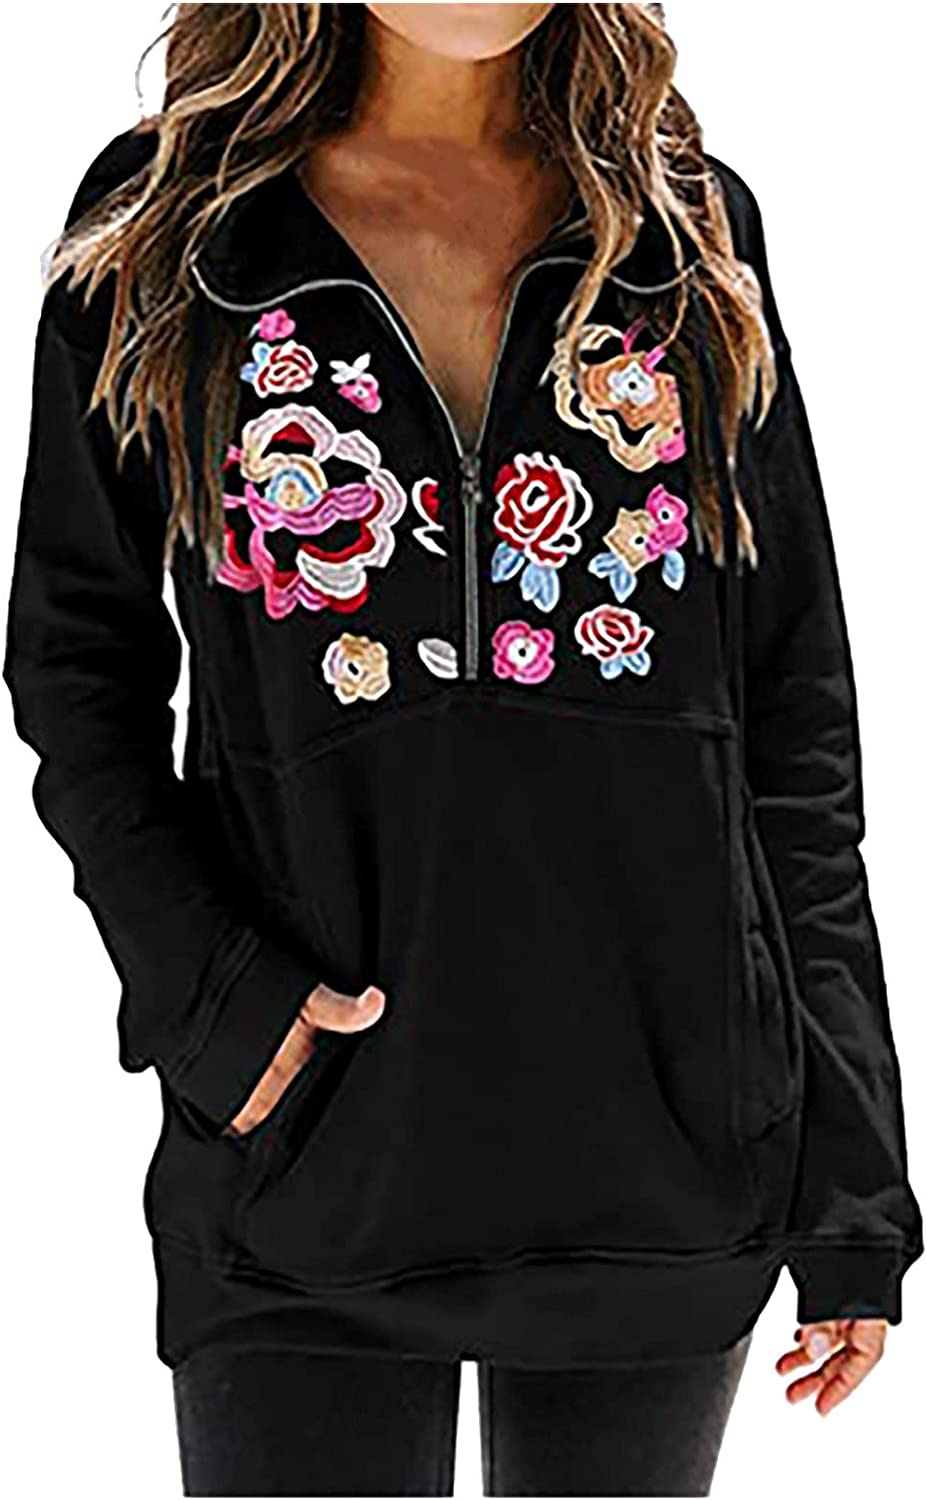 Pullovers for Women Casual Half Zipper Lapel Sweatshirts Embroidered Floral Long Sleeve Stand Collar Tunic Tops with Pocket